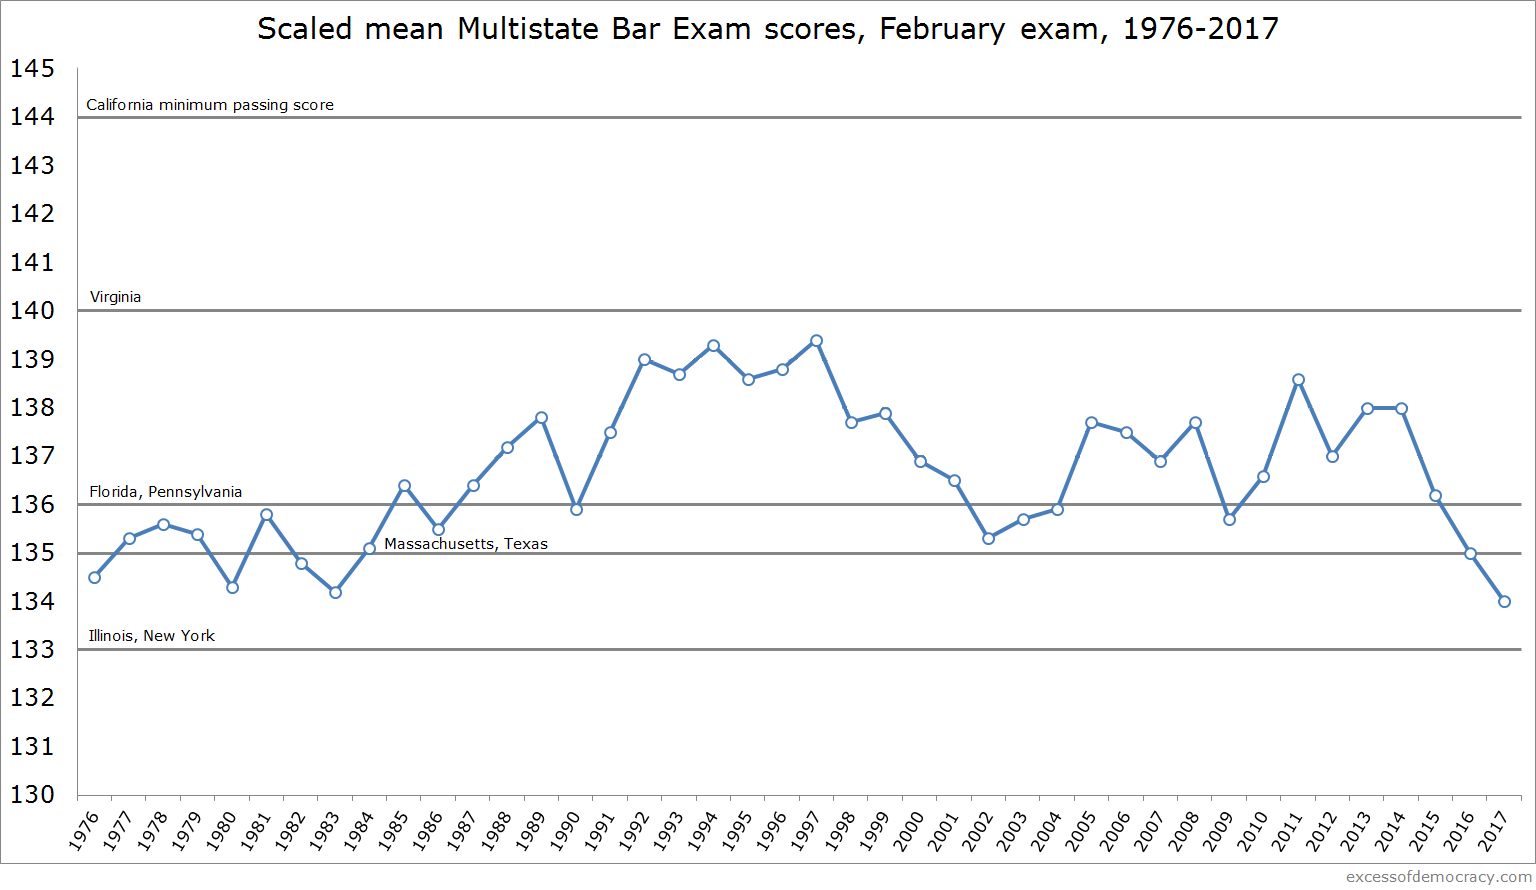 The best ways to visualize the impact of the decline in bar passage